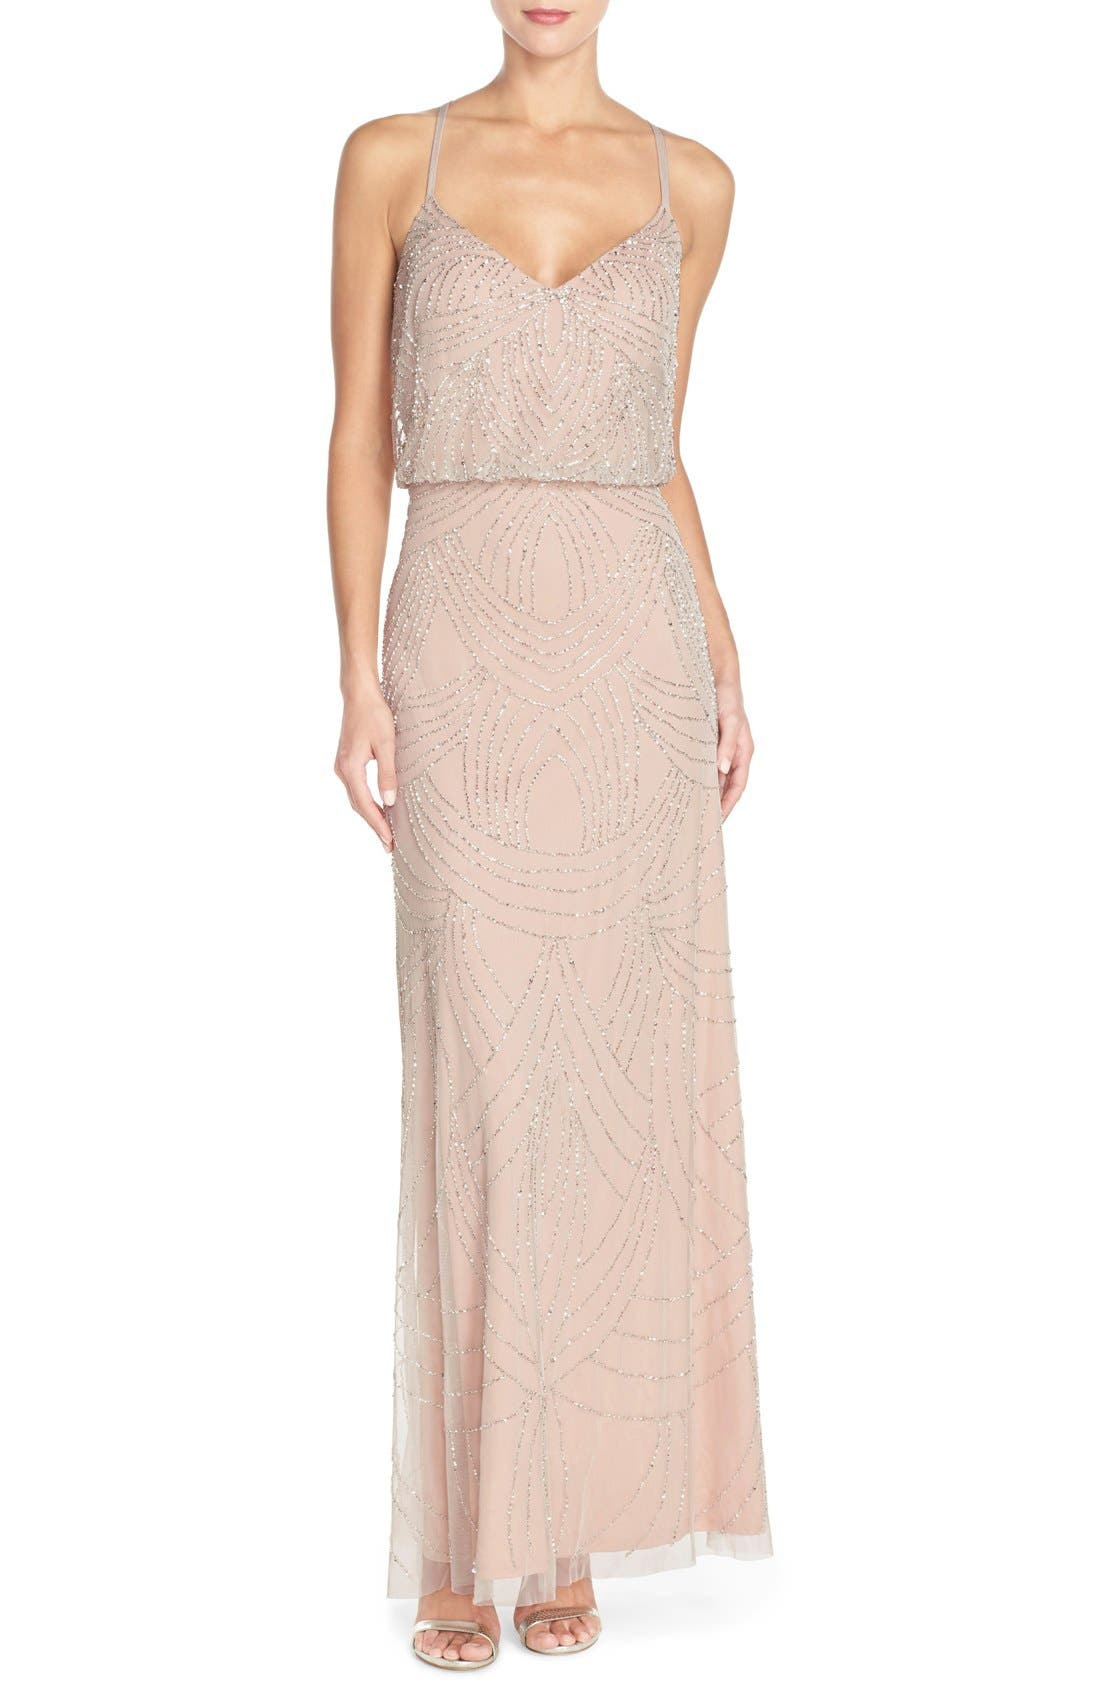 Beaded Chiffon Blouson Gown,                         Main,                         color, Silver/ Nude